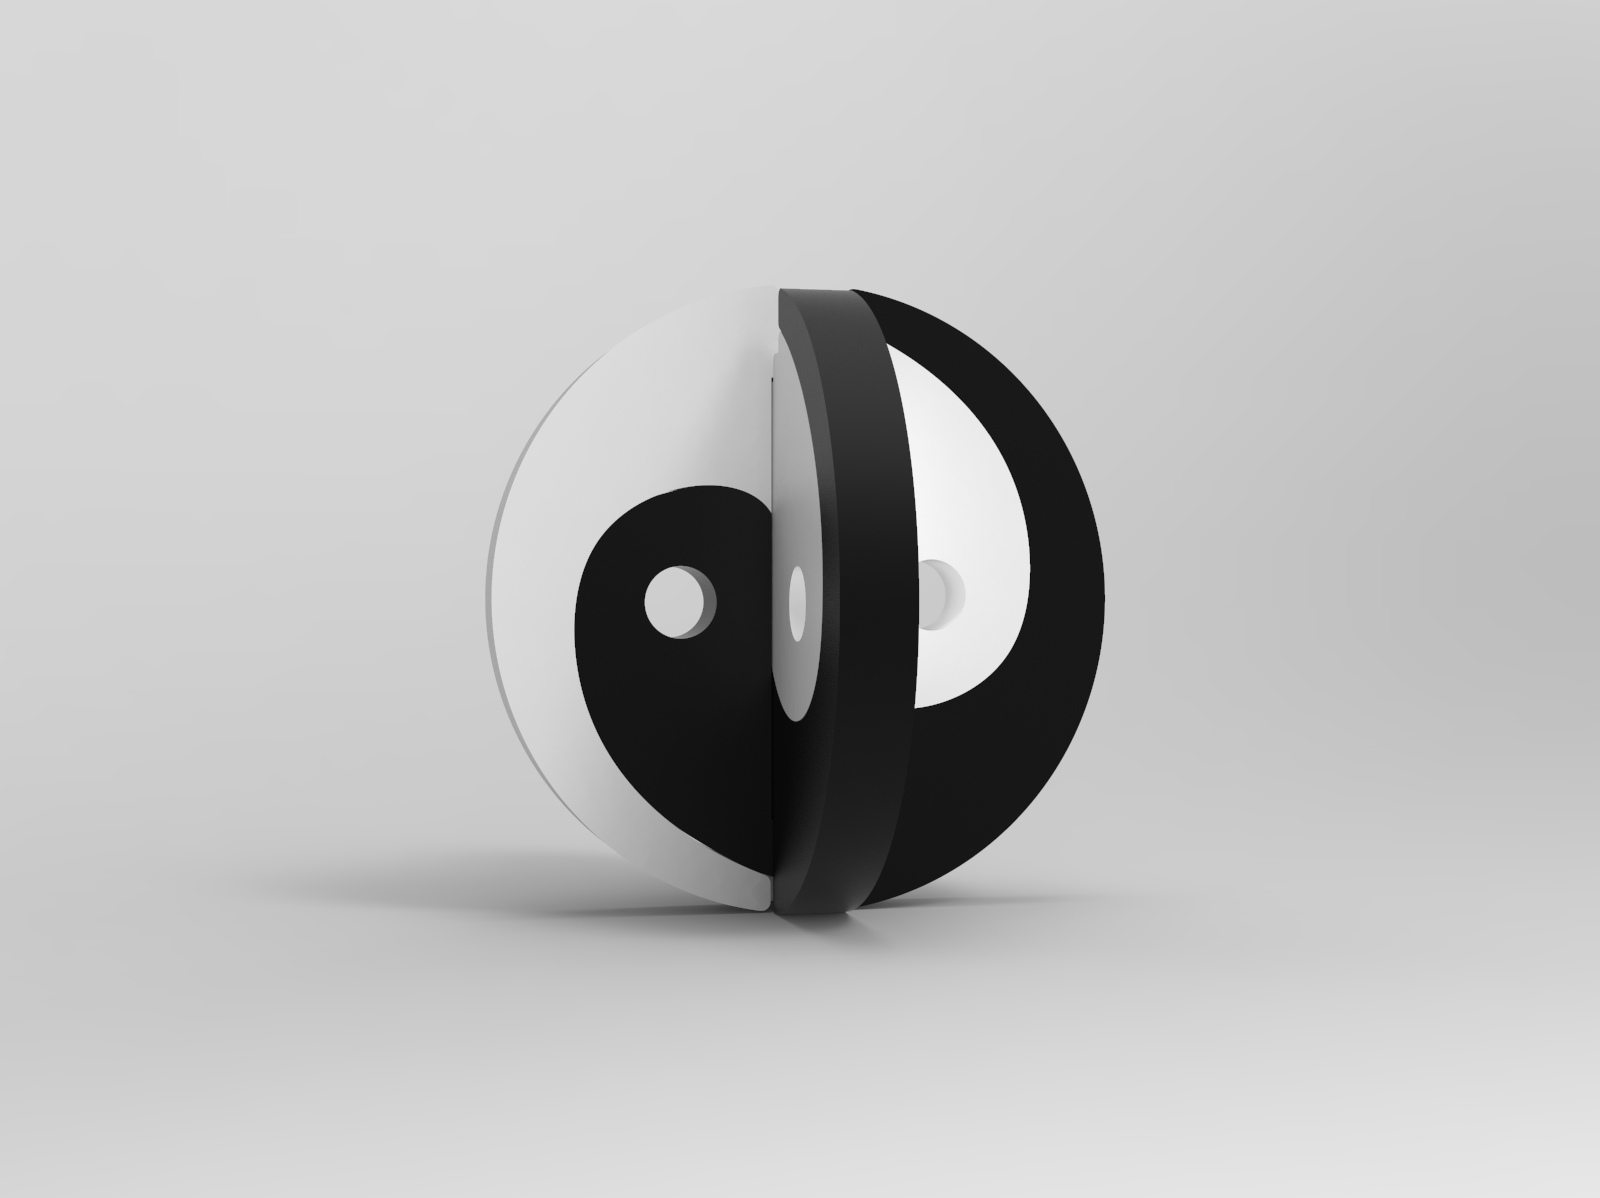 Laser Cut Yin And Yang Puzzle 8mm Plywood DXF File